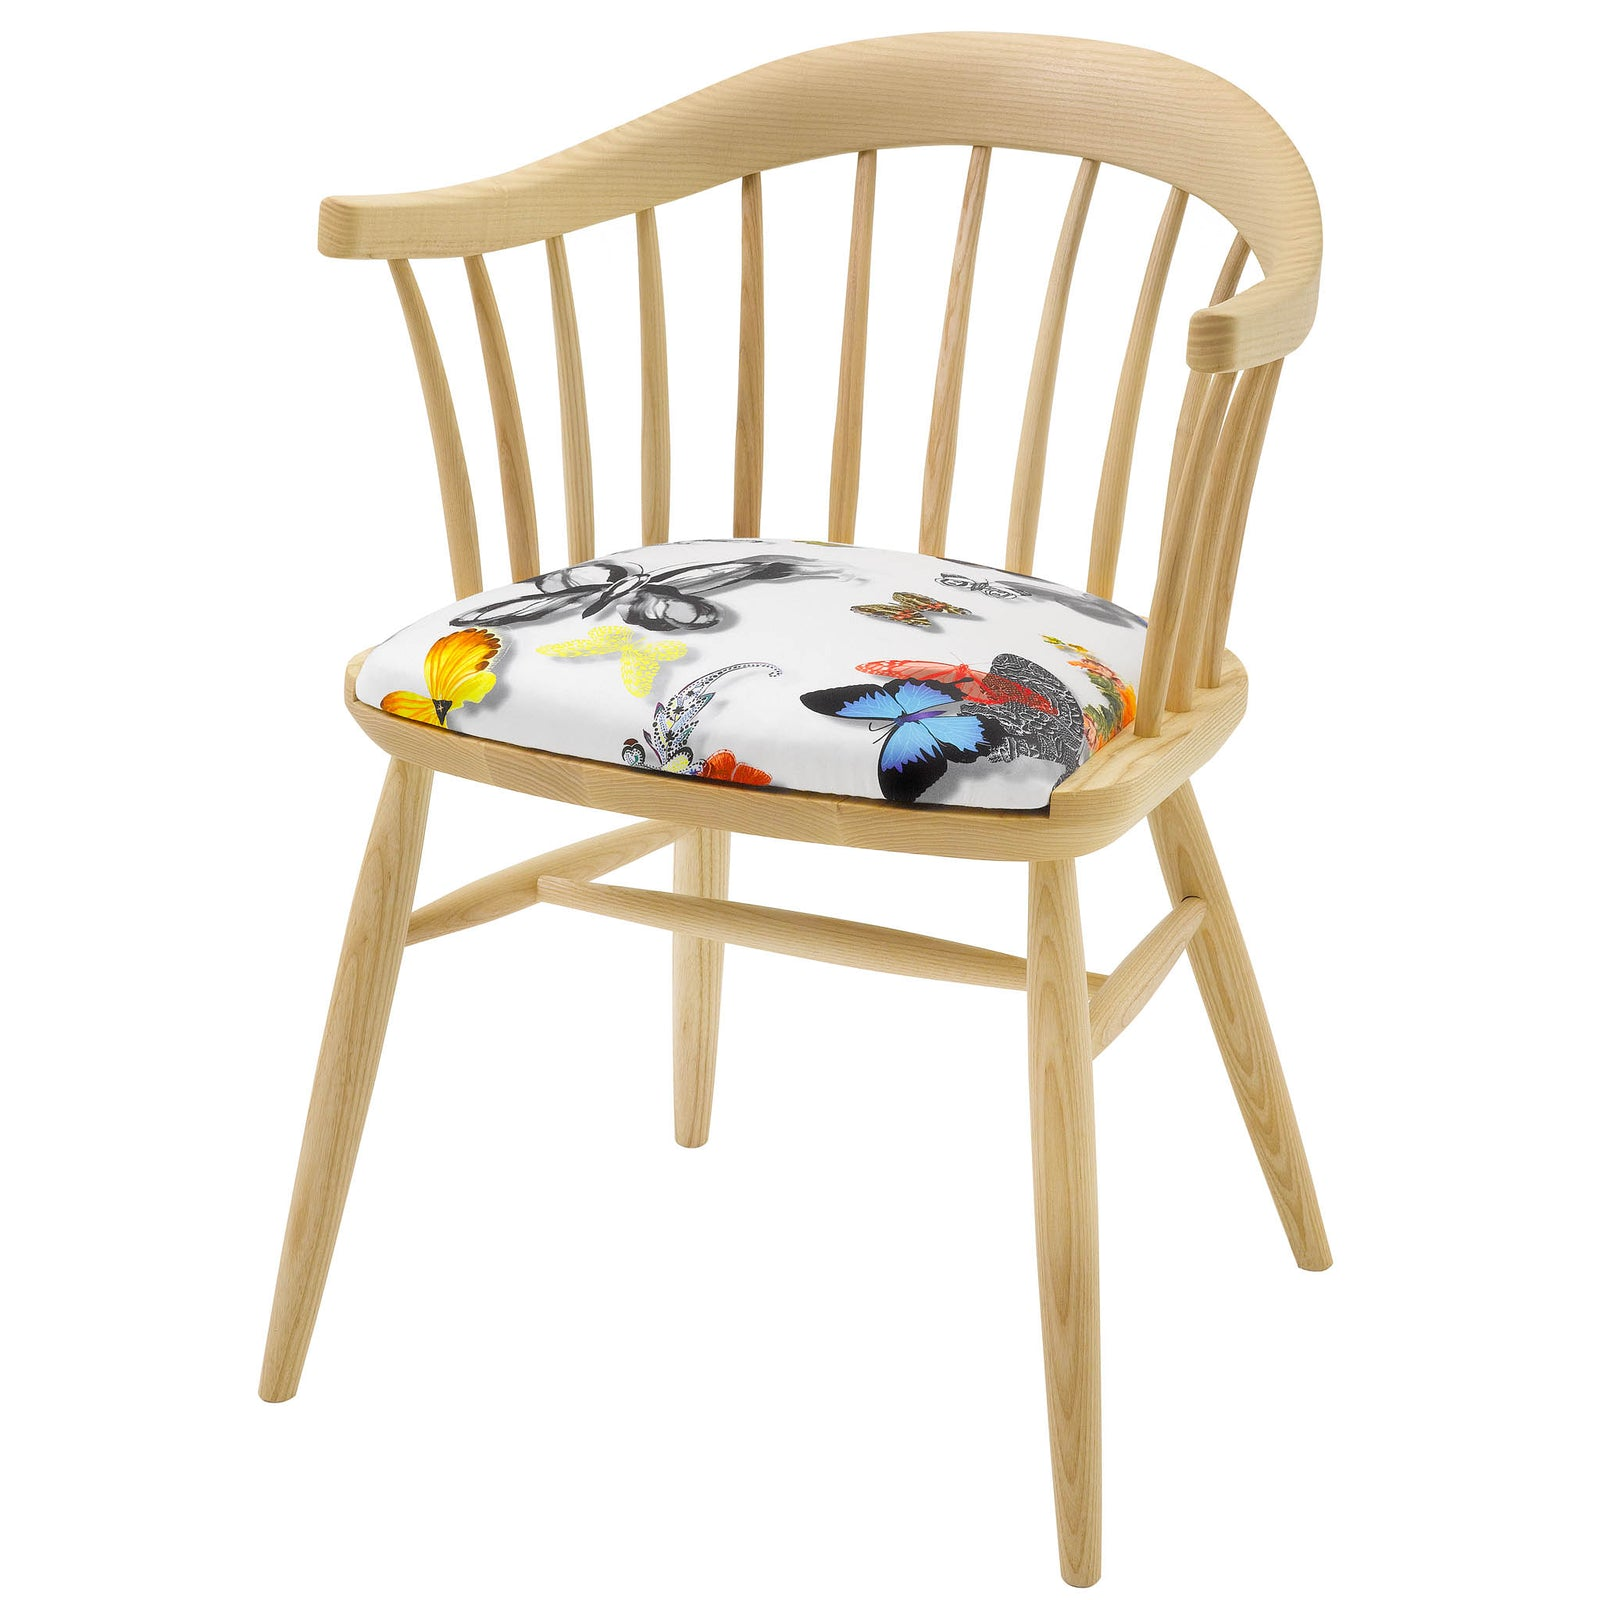 Hand Crafted Contemporary Dining Chair in solid english ash with a natural oiled finish, upholstered in Butterfly Parade by Christian Lacroix